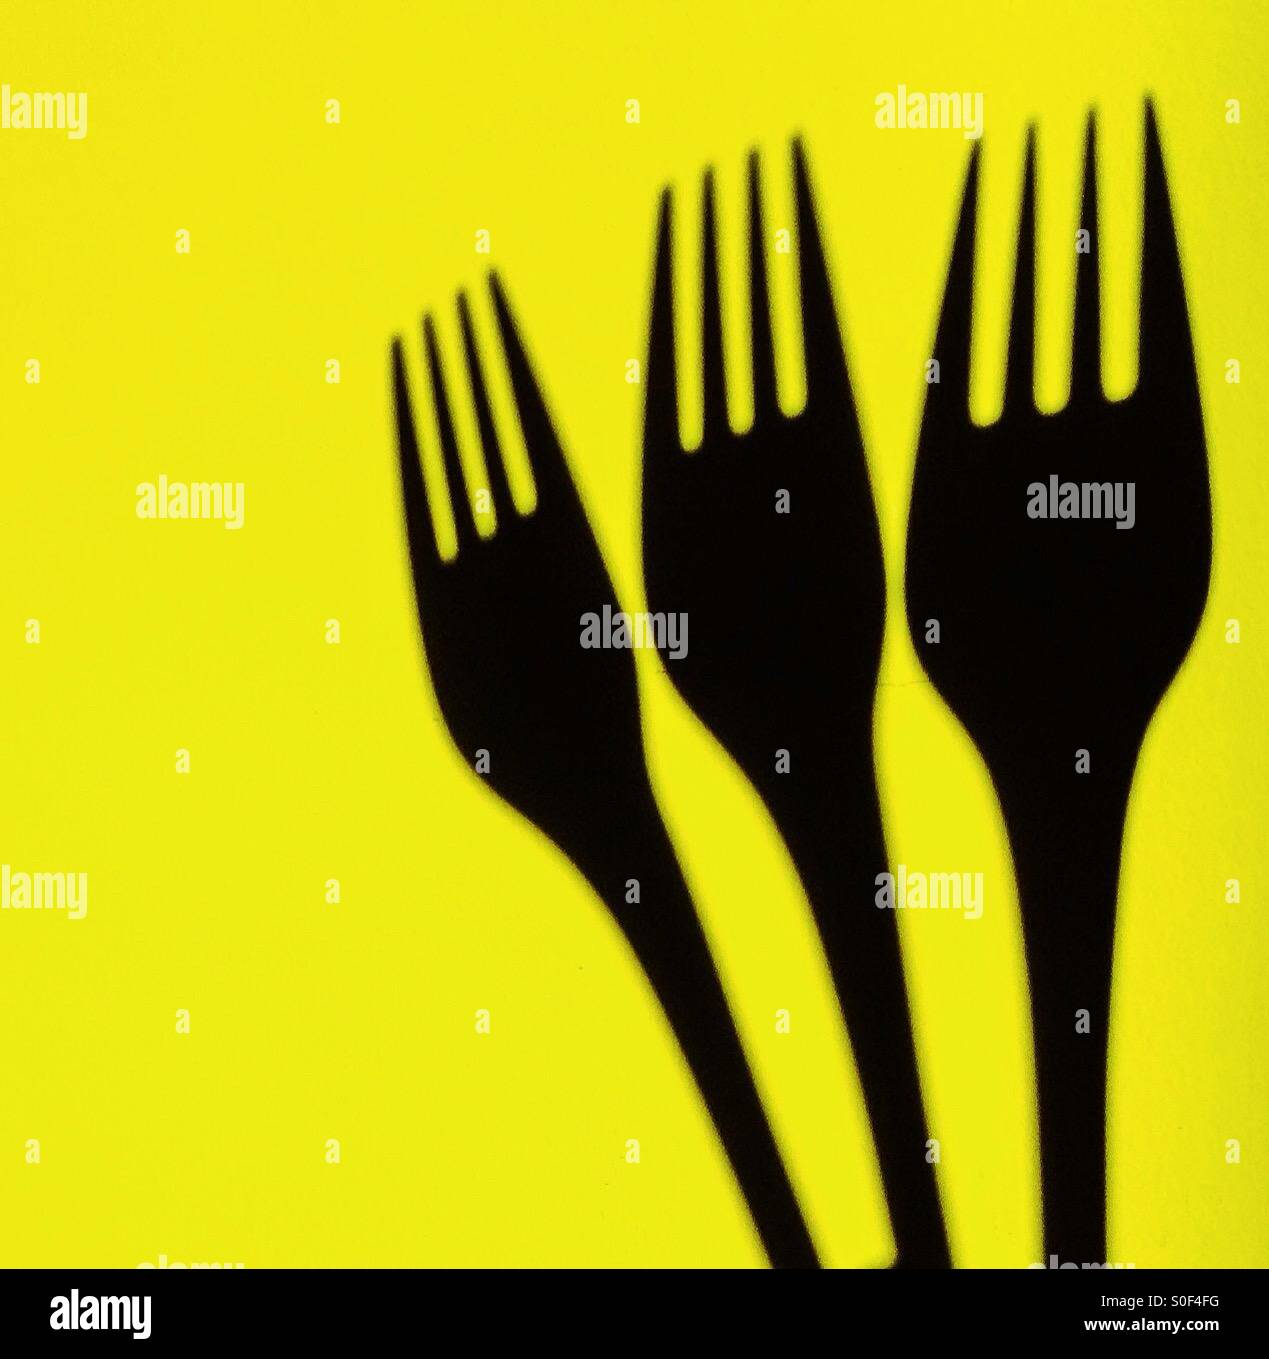 Three forks on yellow background - Stock Image